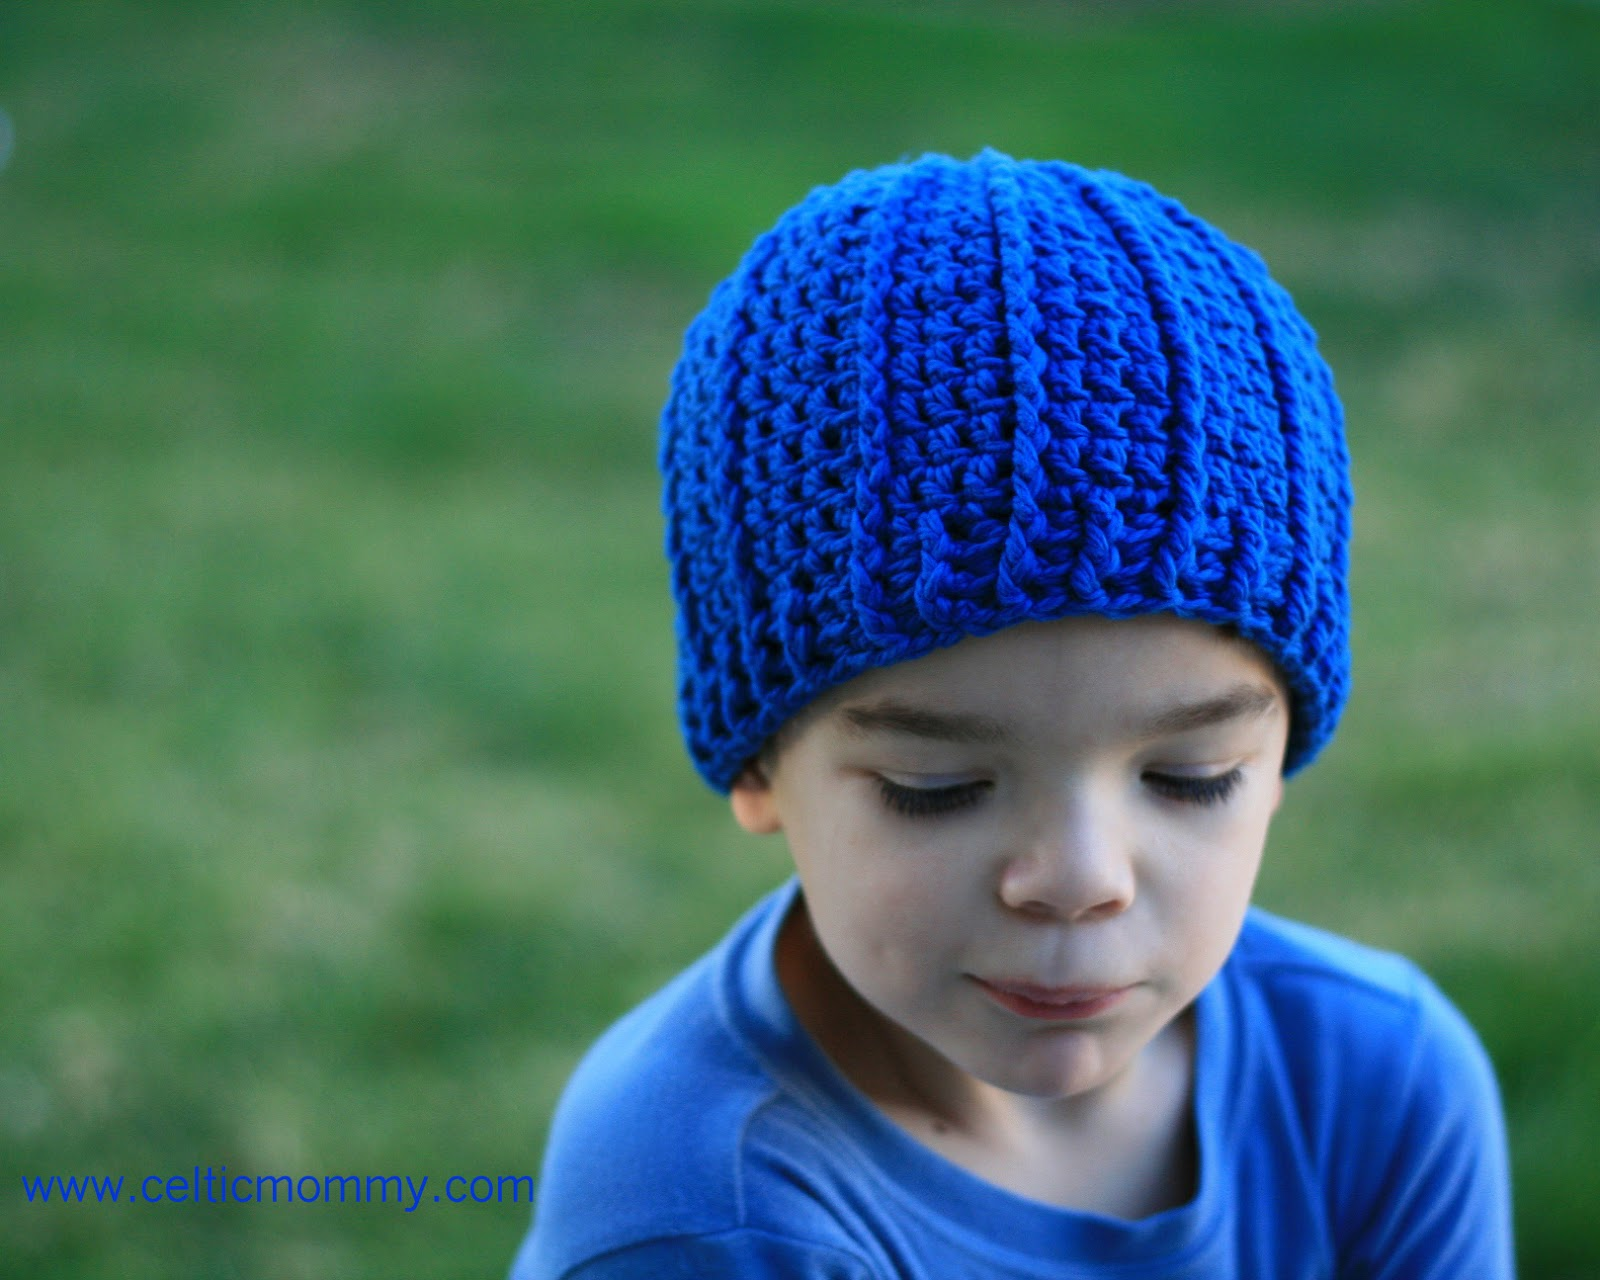 RIBBED CROCHET HAT PATTERN ? Easy Crochet Patterns